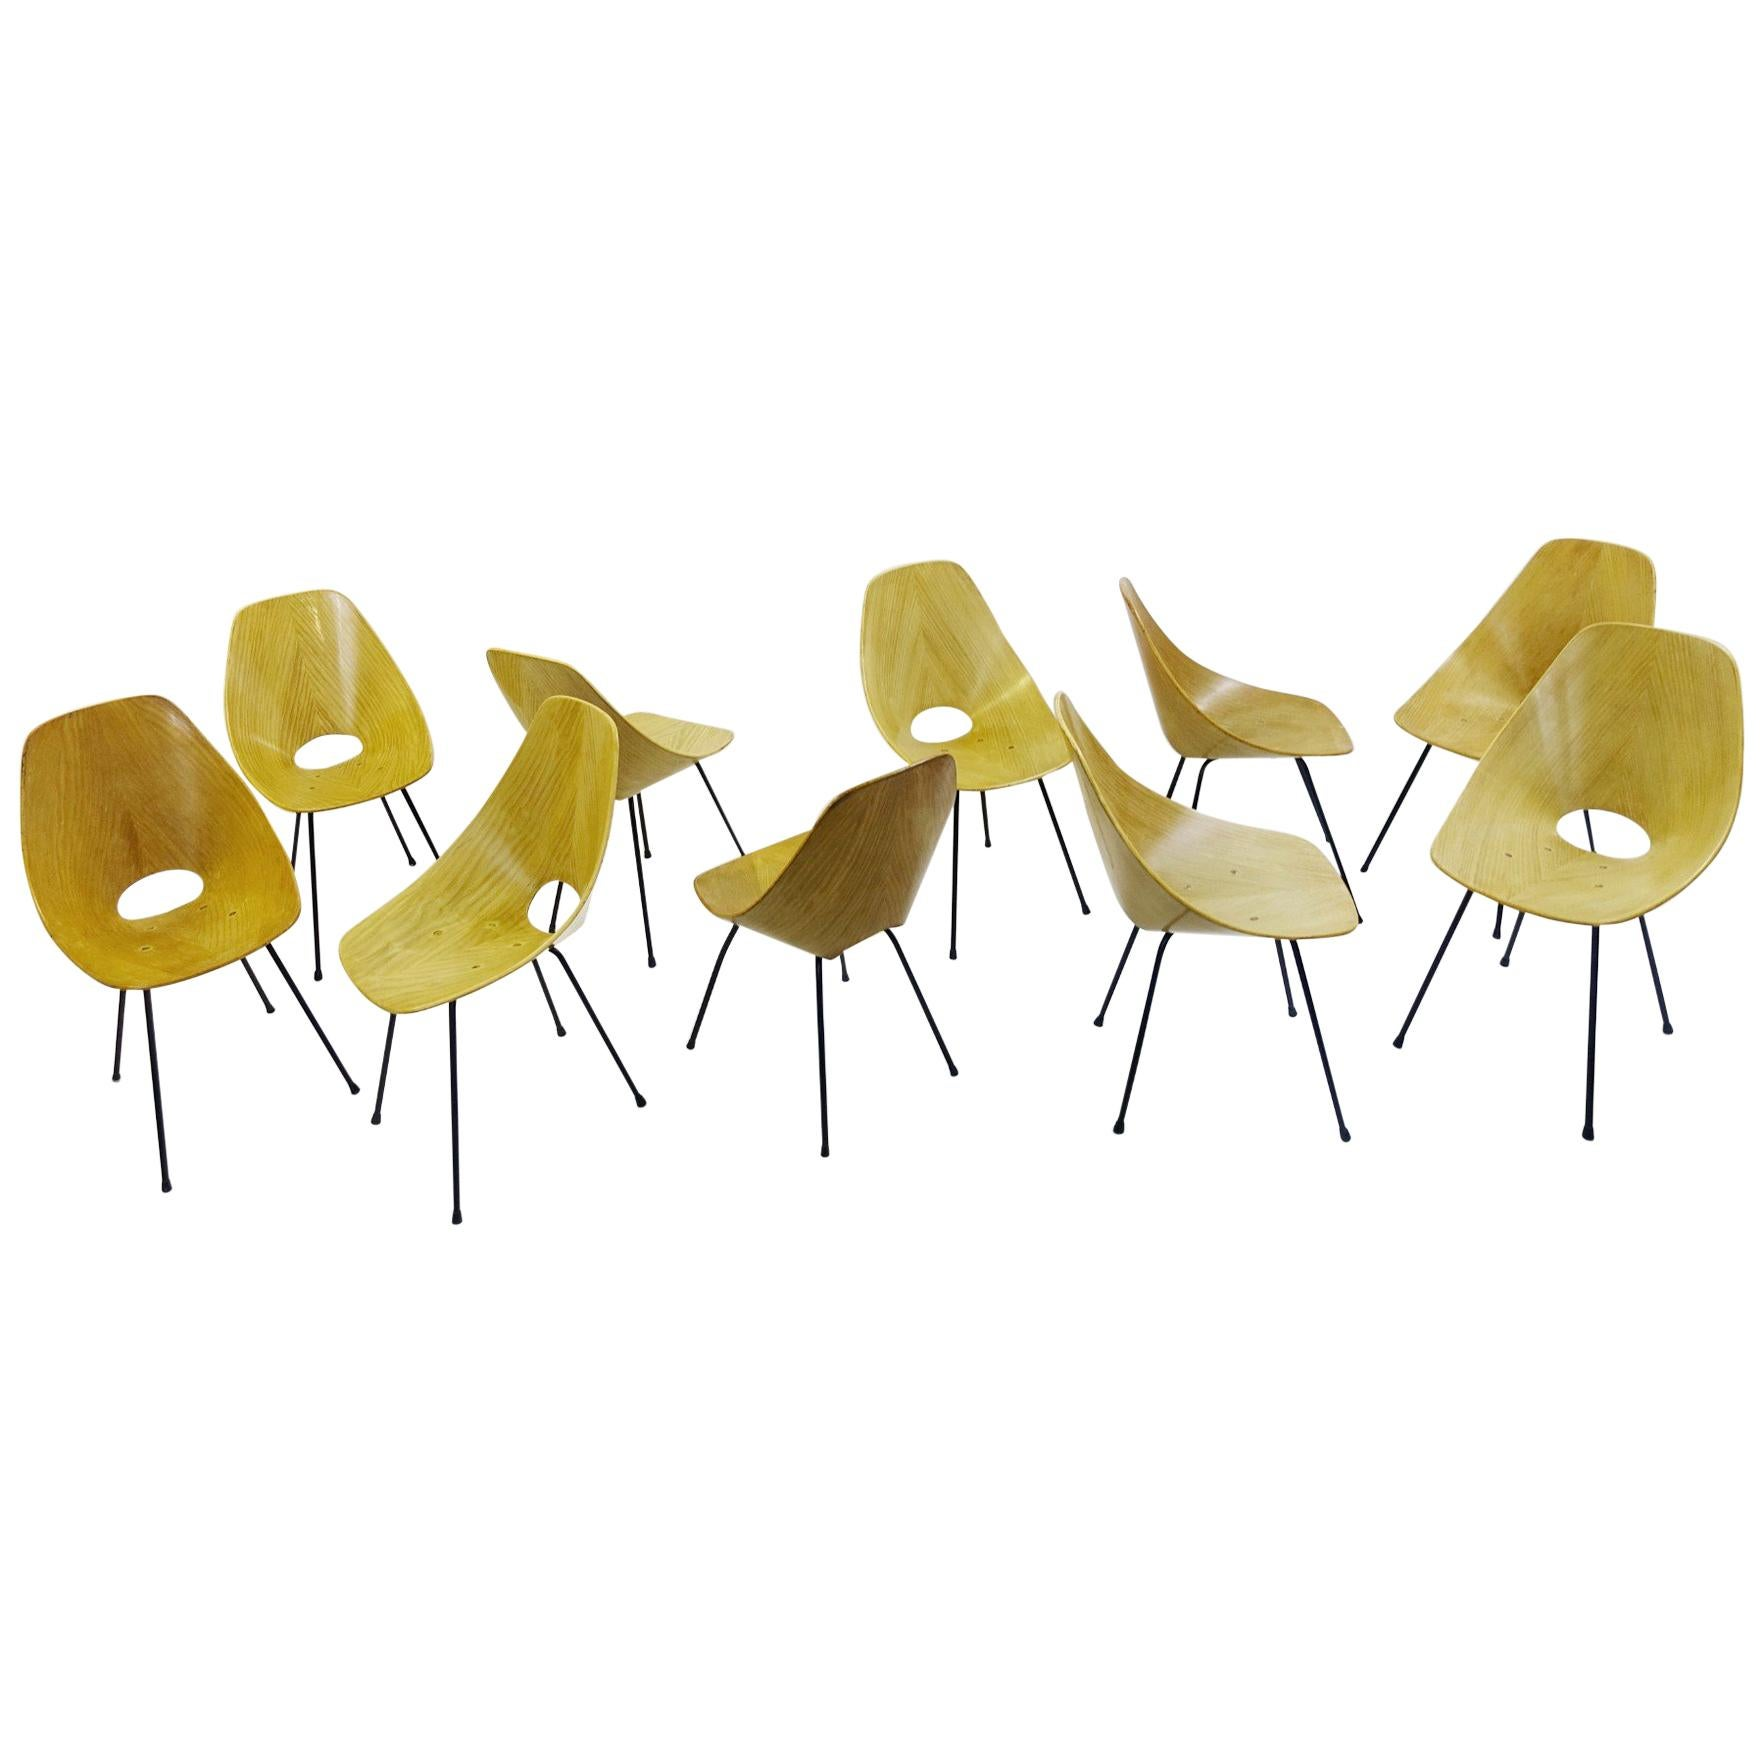 Set of Ten Medea Dining Chairs in Ash by Vittorio Nobili for Tagliabue, 1950s